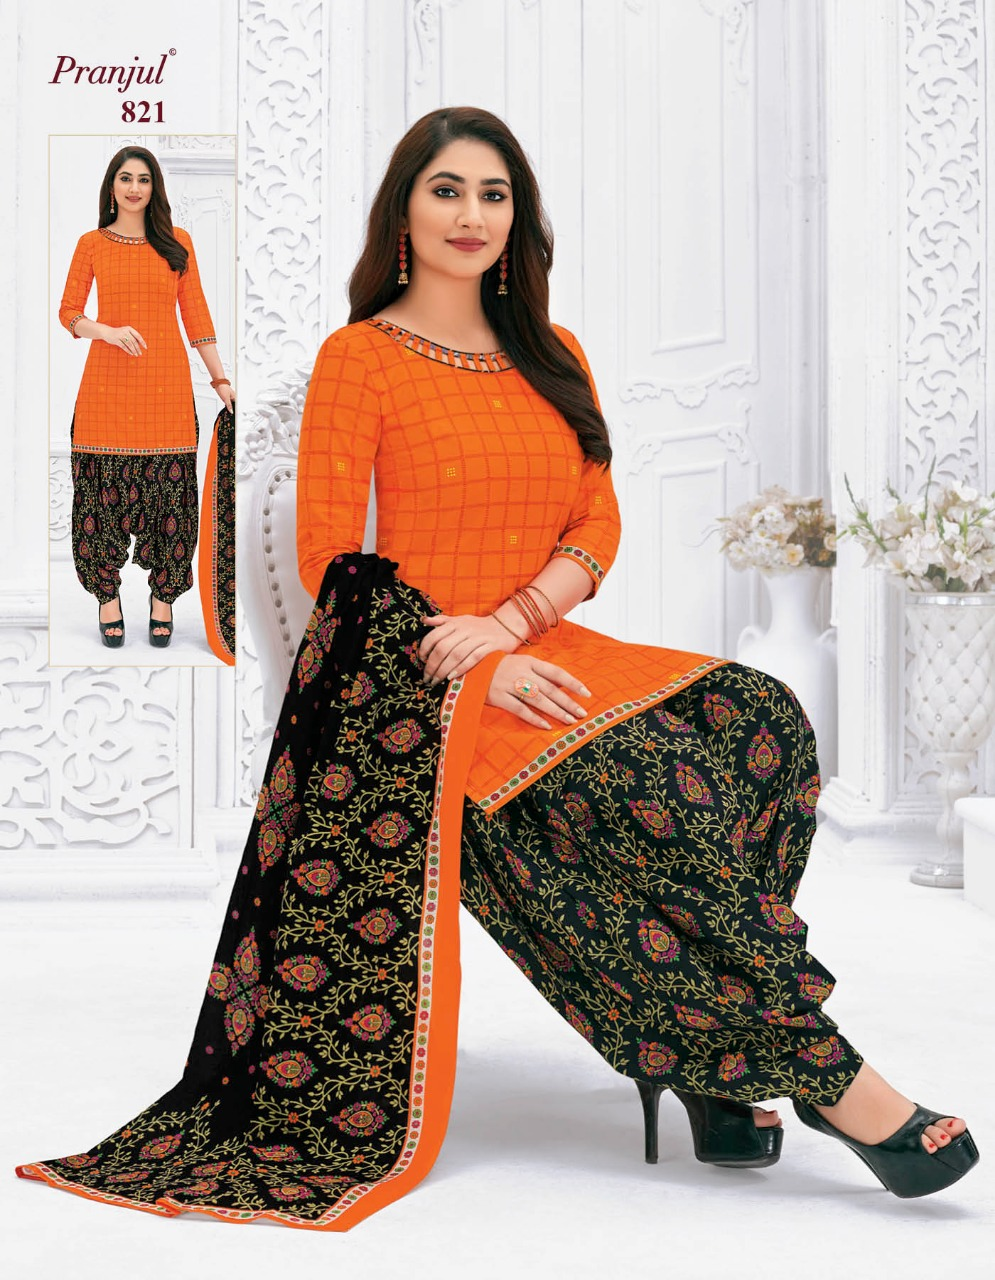 Pranjul Priyanka Vol 8 A Readymade Suit Wholesale Catalog 15 Pcs 10 - Pranjul Priyanka Vol 8 A Readymade Suit Wholesale Catalog 15 Pcs